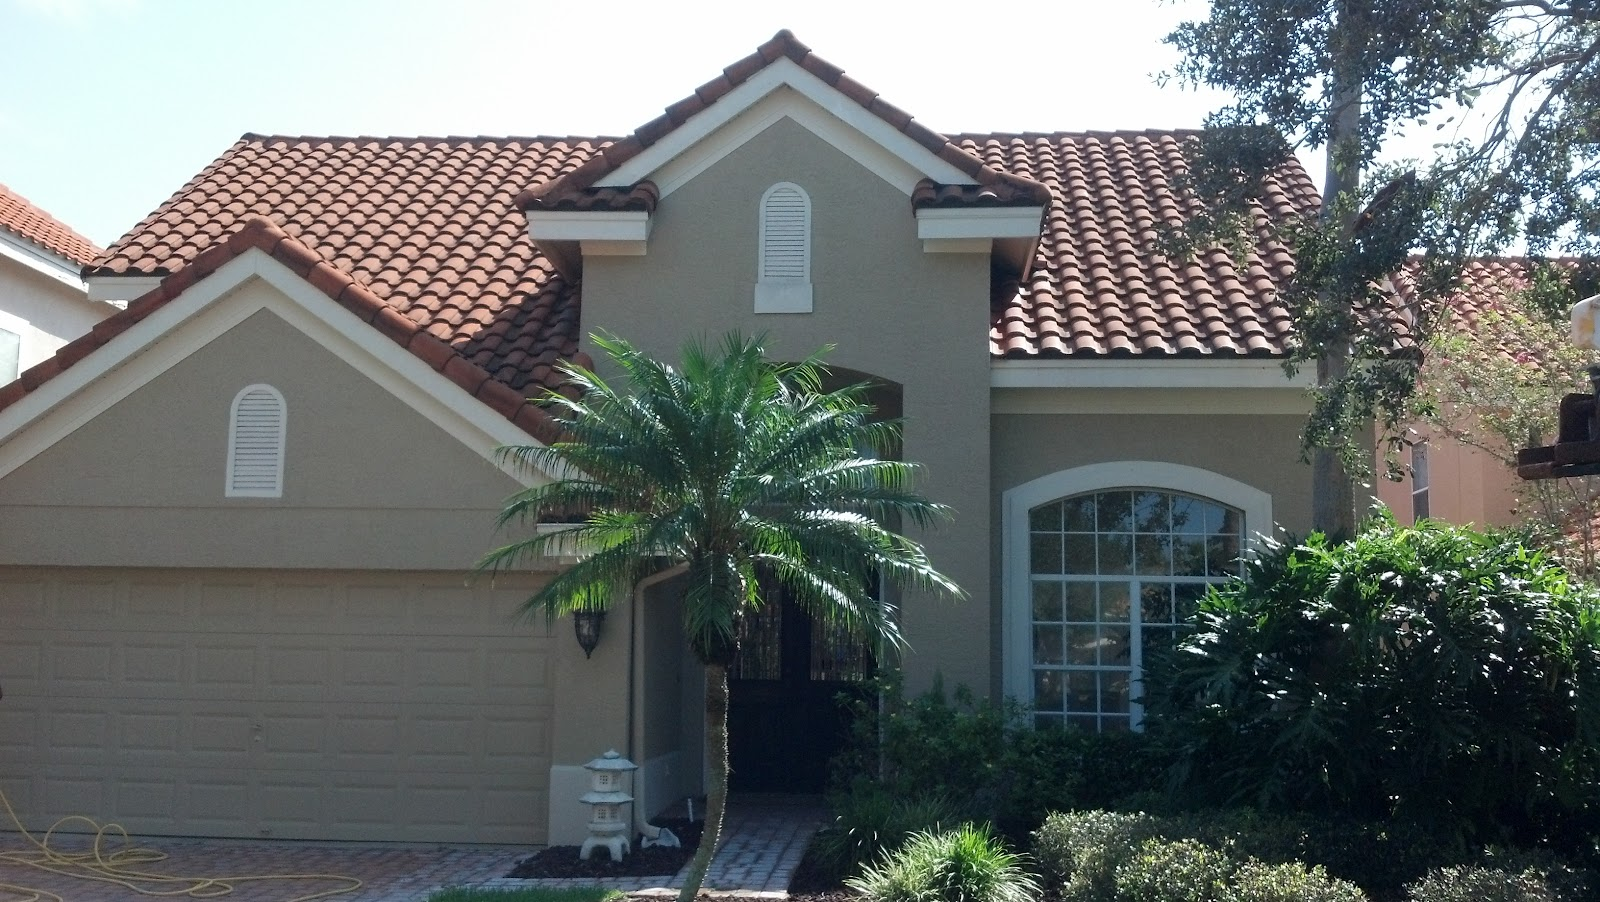 Roof Tile Tile Roof Cleaning Tampa